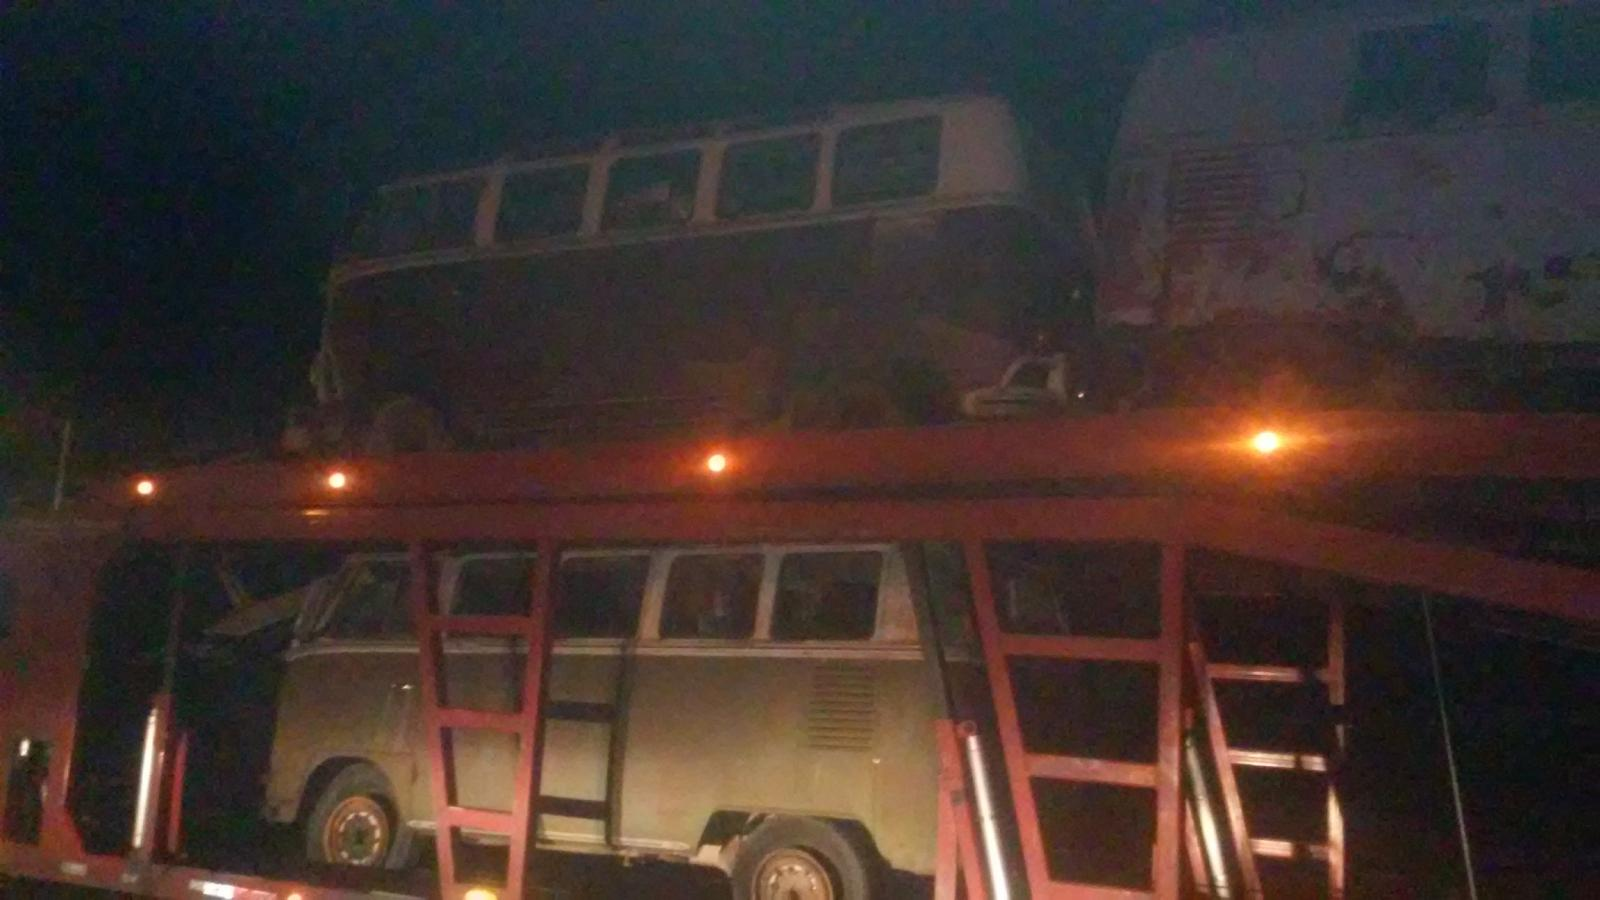 Truck loads of vw busses leaving